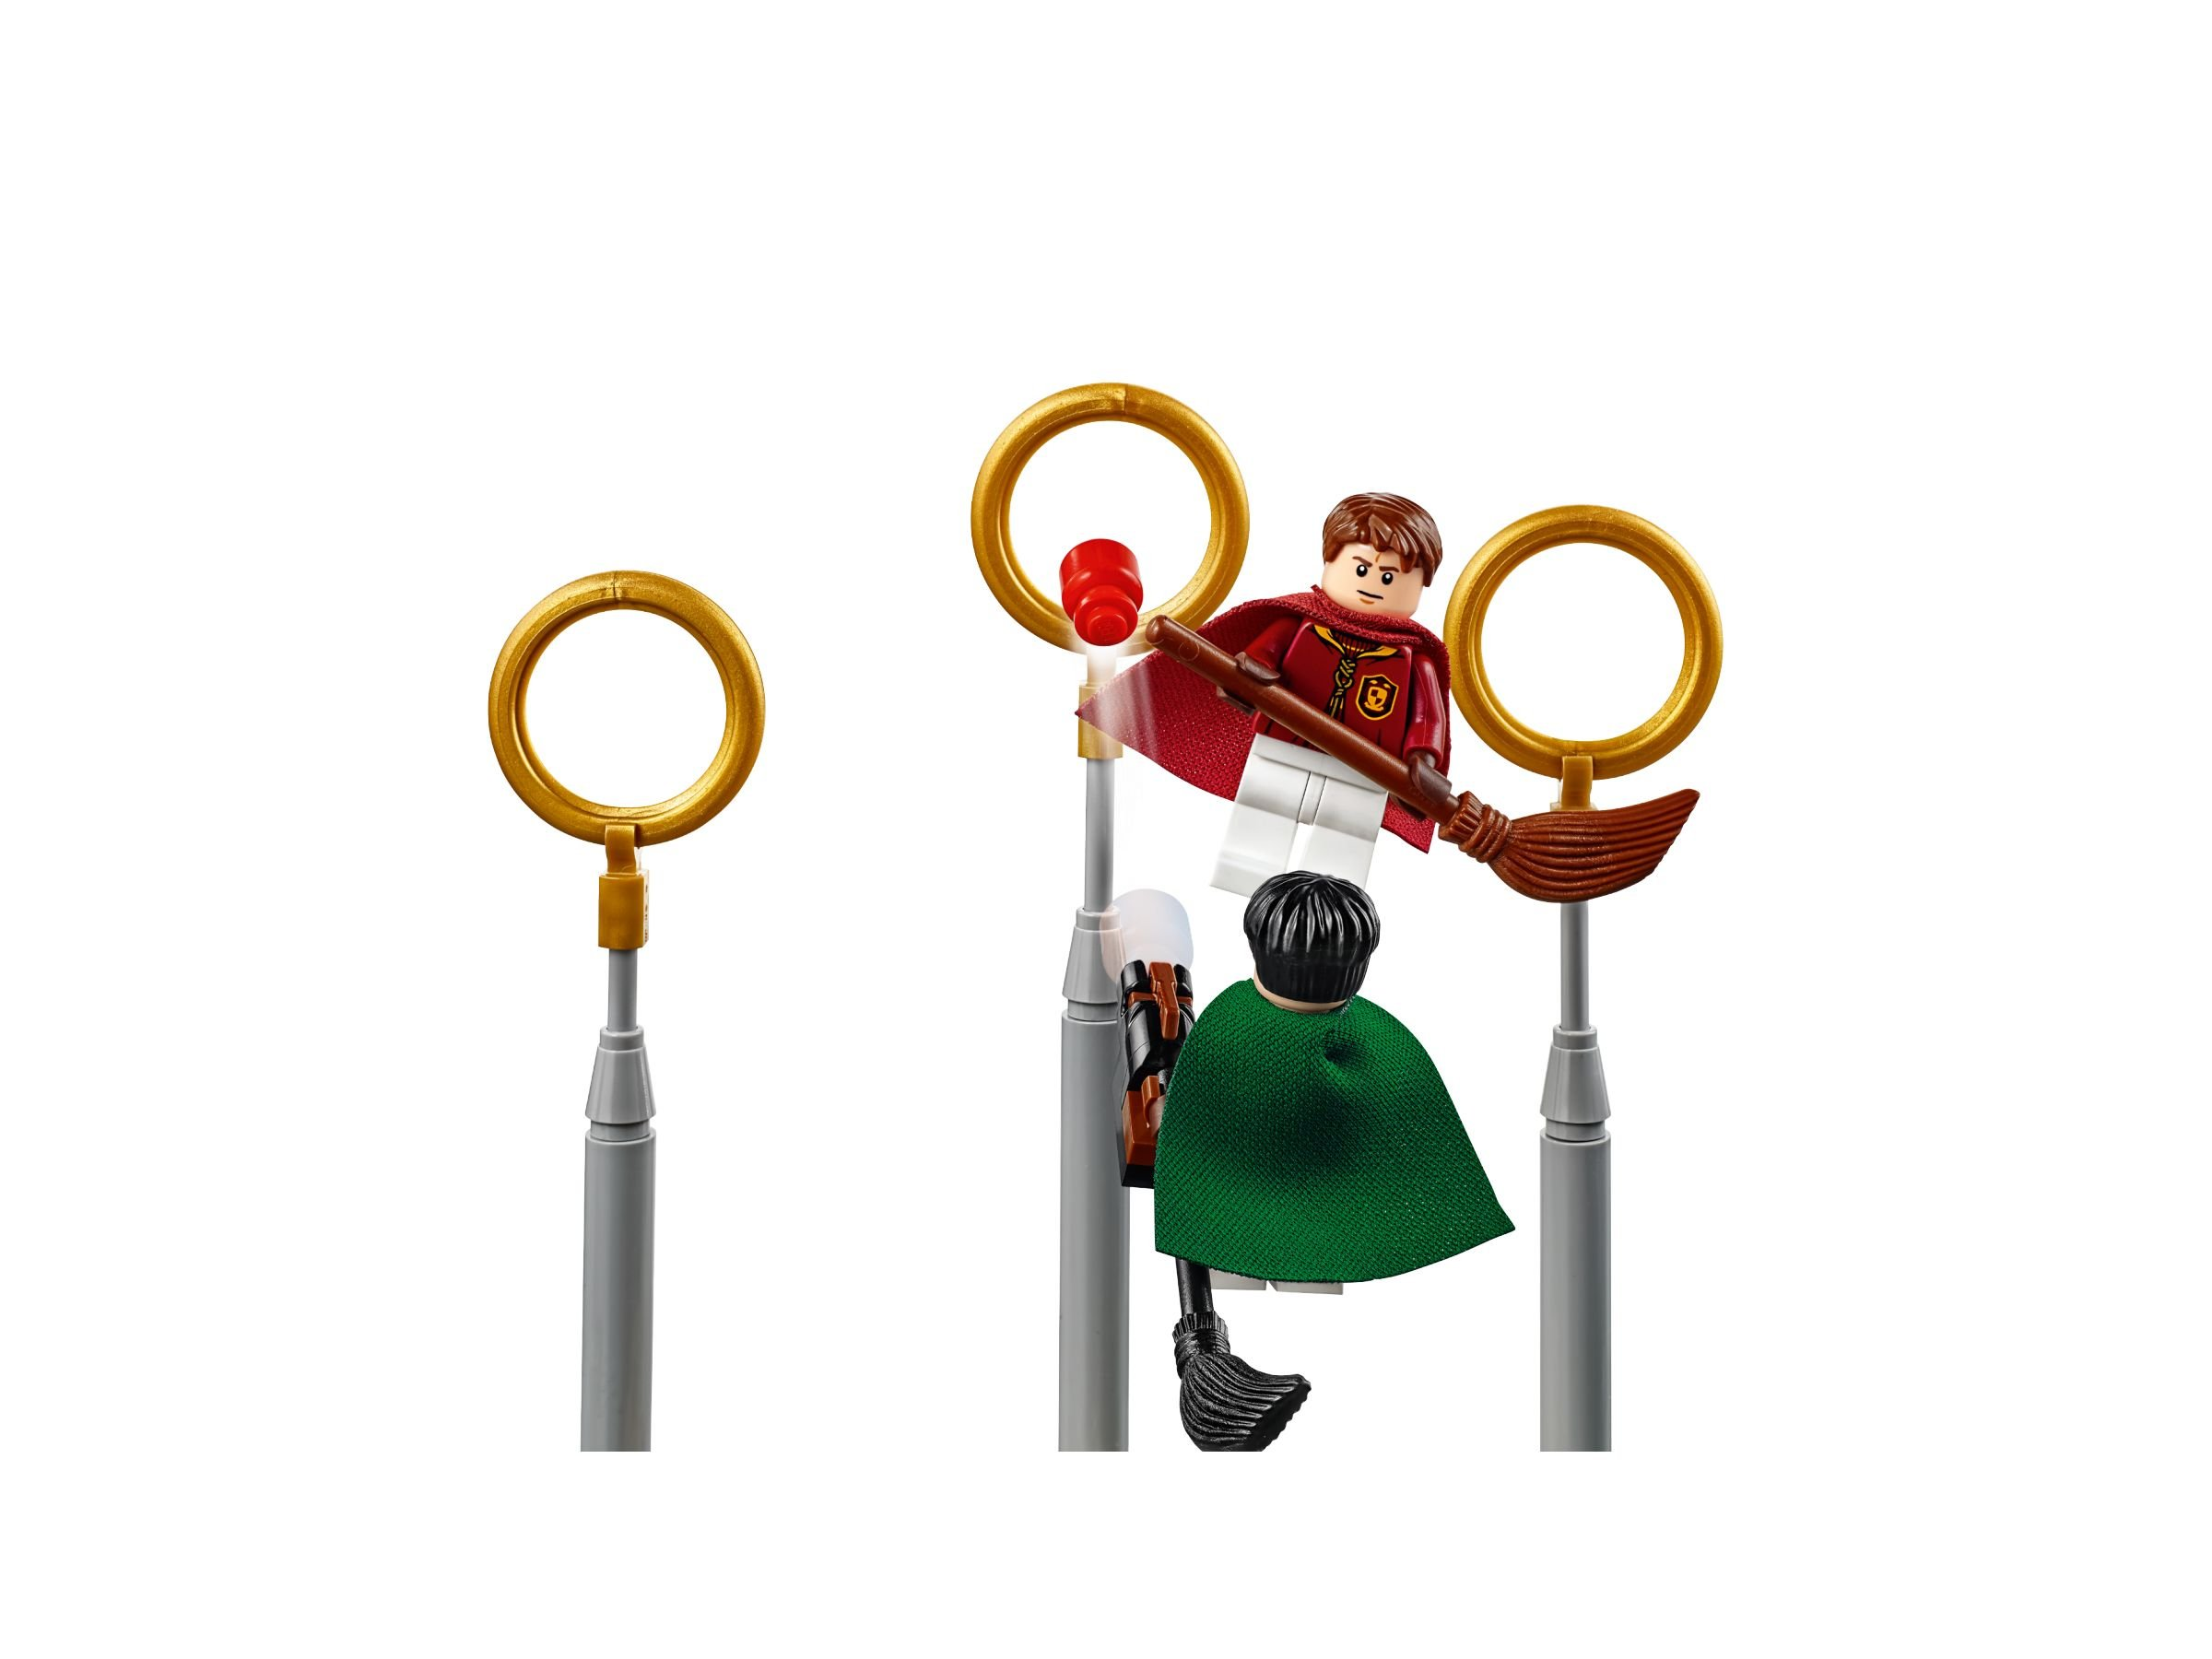 LEGO Harry Potter 75956 Quidditch™ Turnier LEGO_75956_alt5.jpg